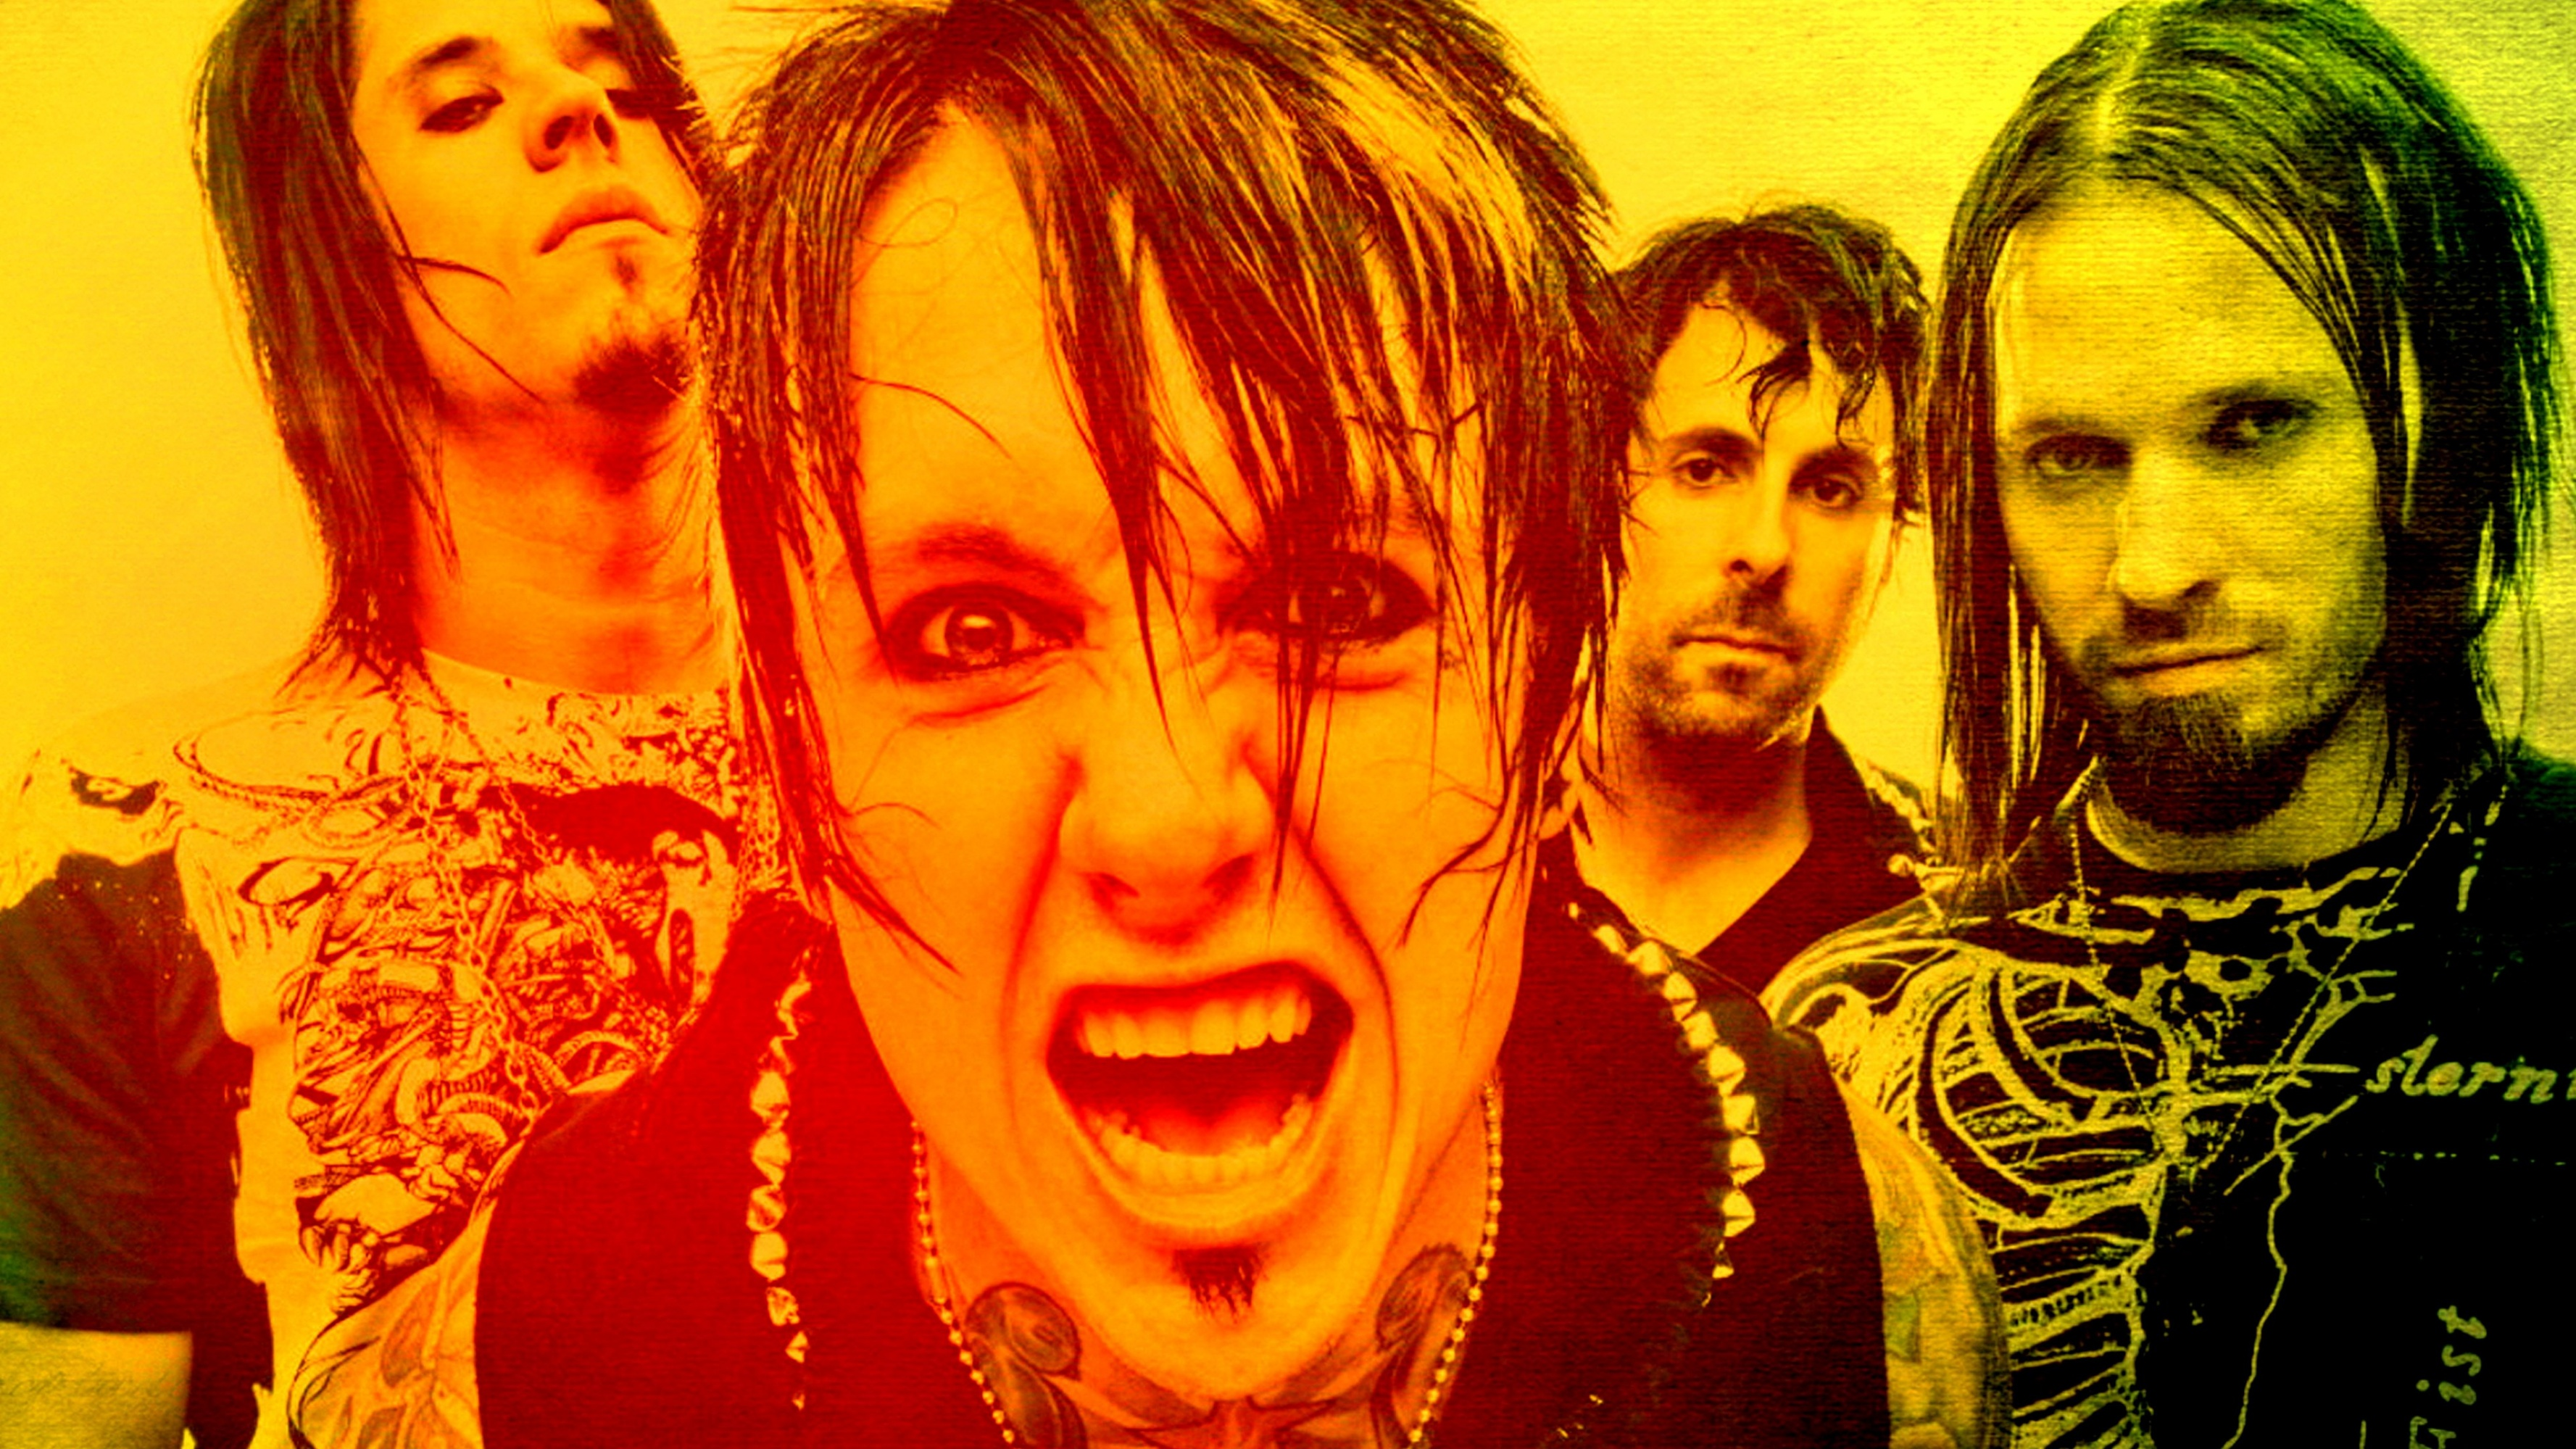 Papa Roach Wallpapers